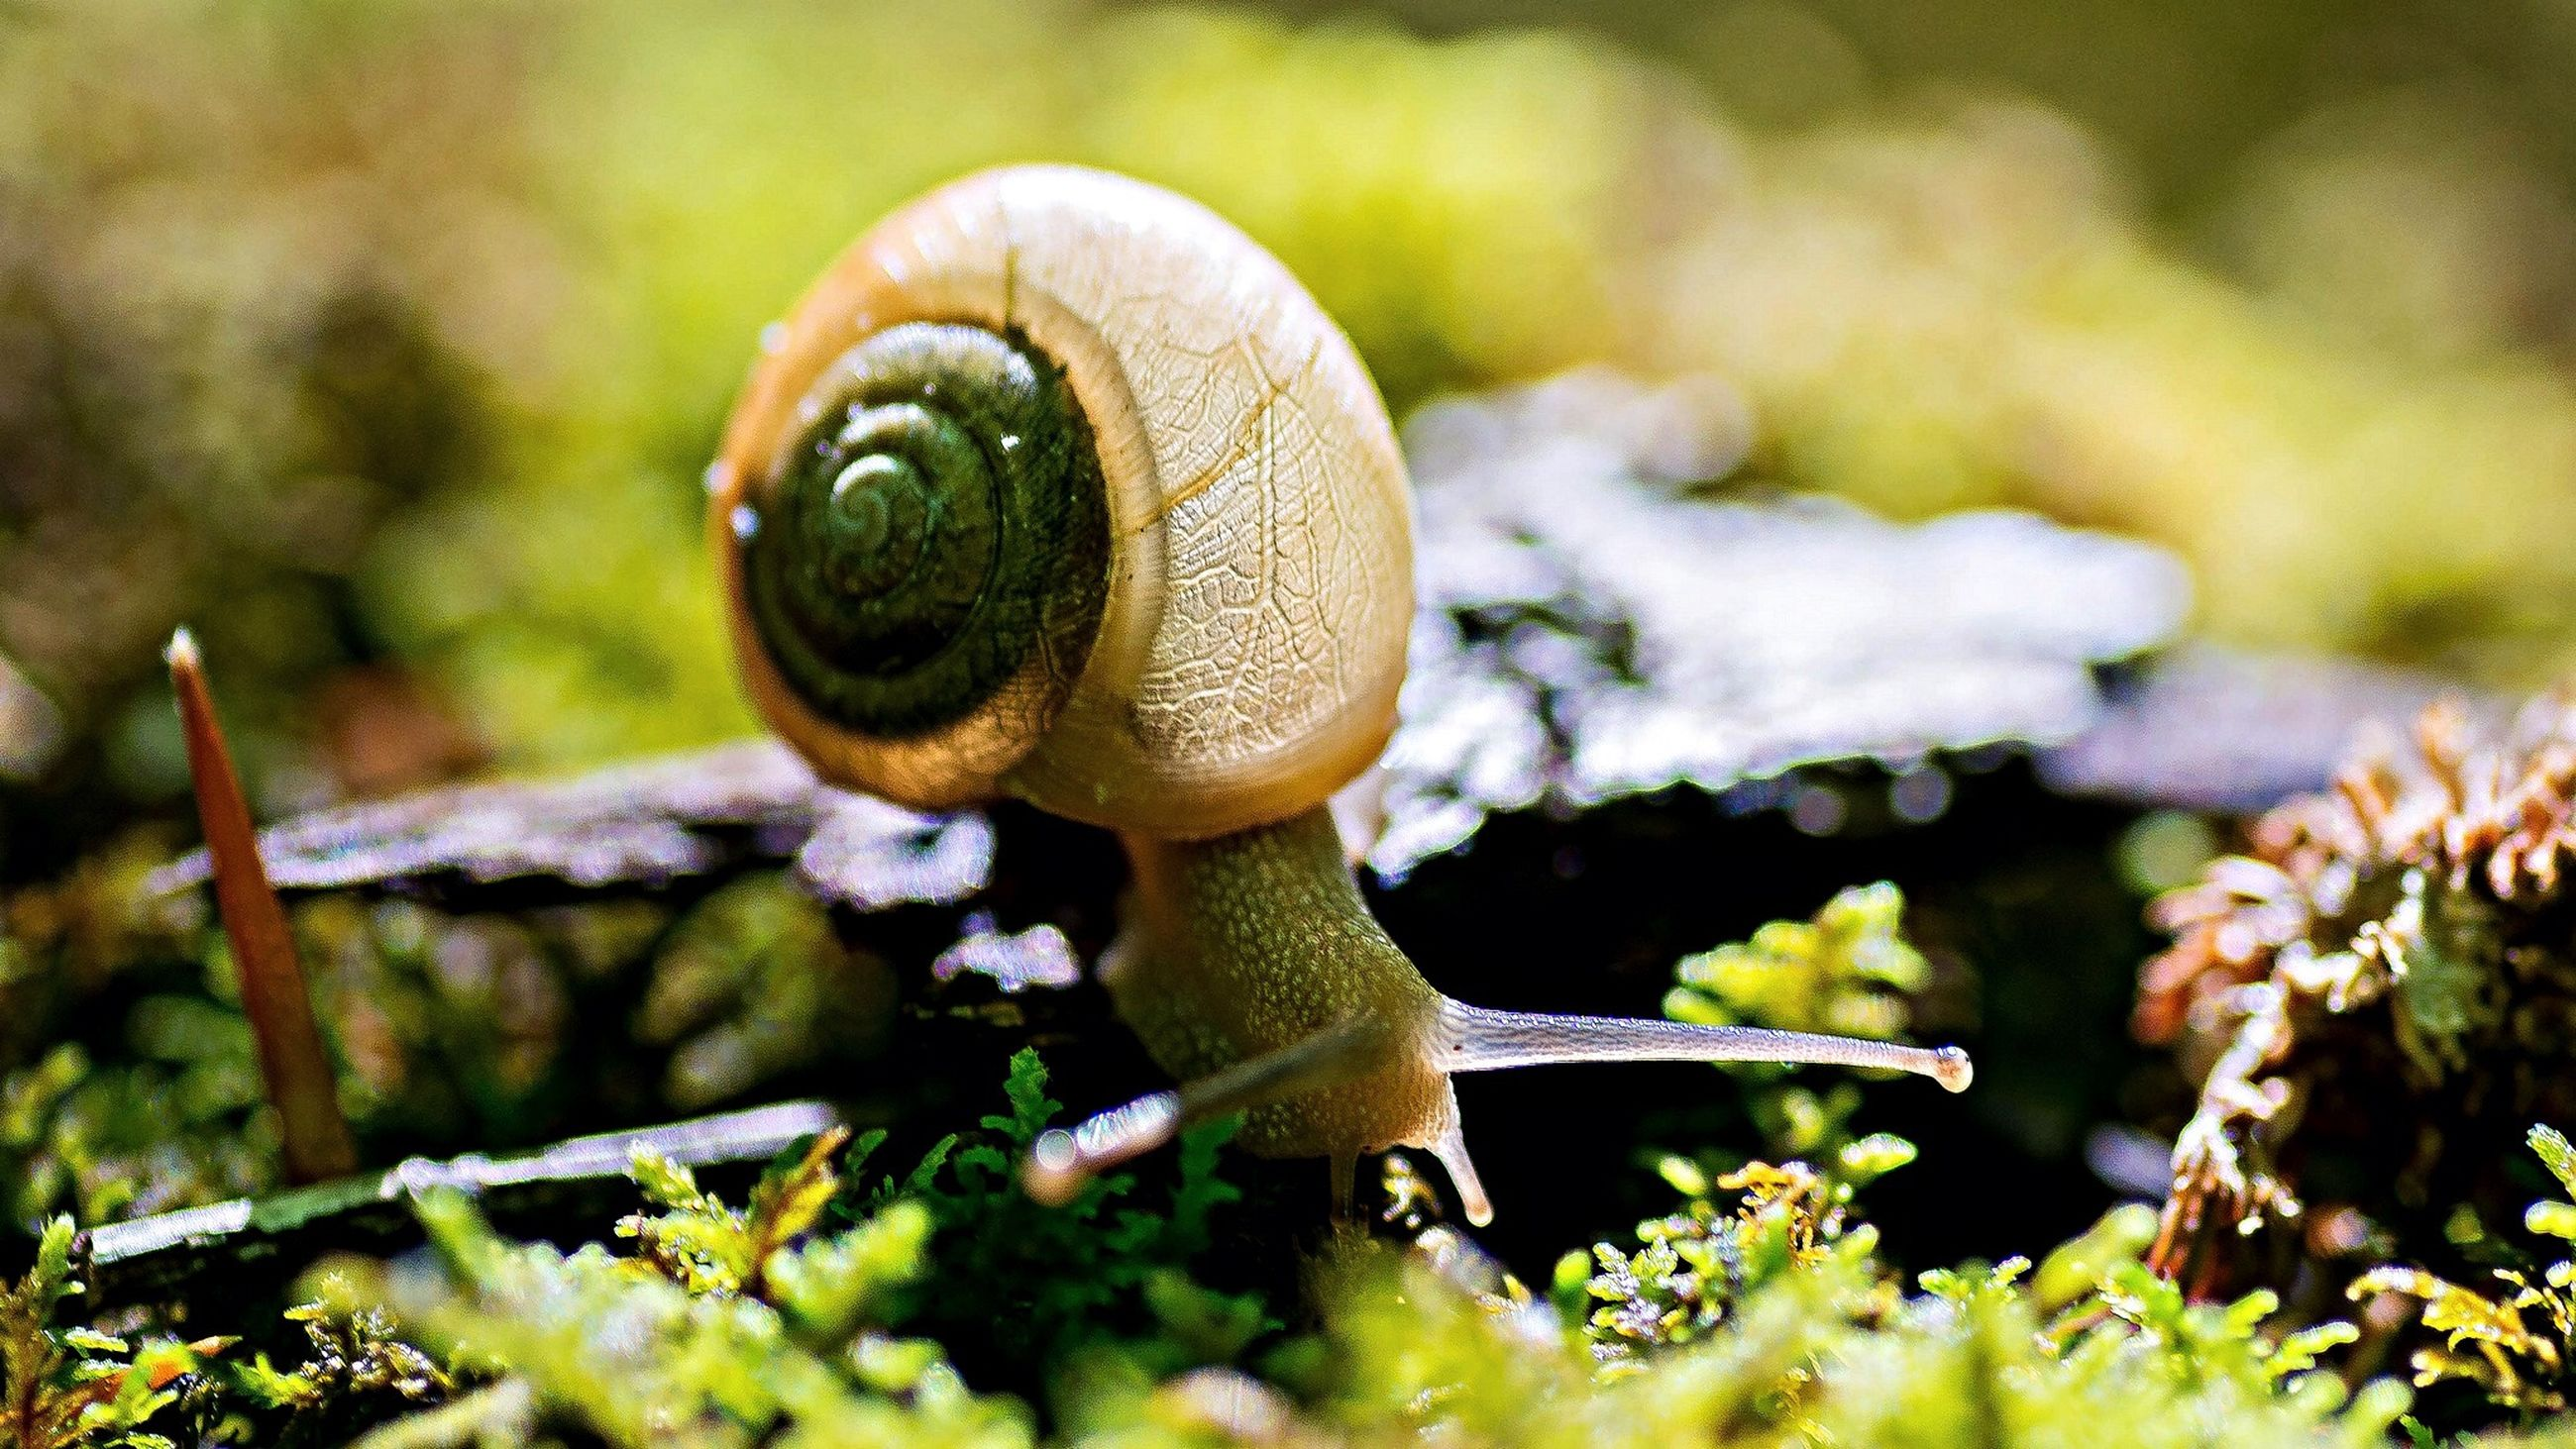 close-up, focus on foreground, selective focus, snail, nature, forest, growth, leaf, one animal, moss, animal themes, day, animal shell, outdoors, plant, wildlife, tree, beauty in nature, no people, green color